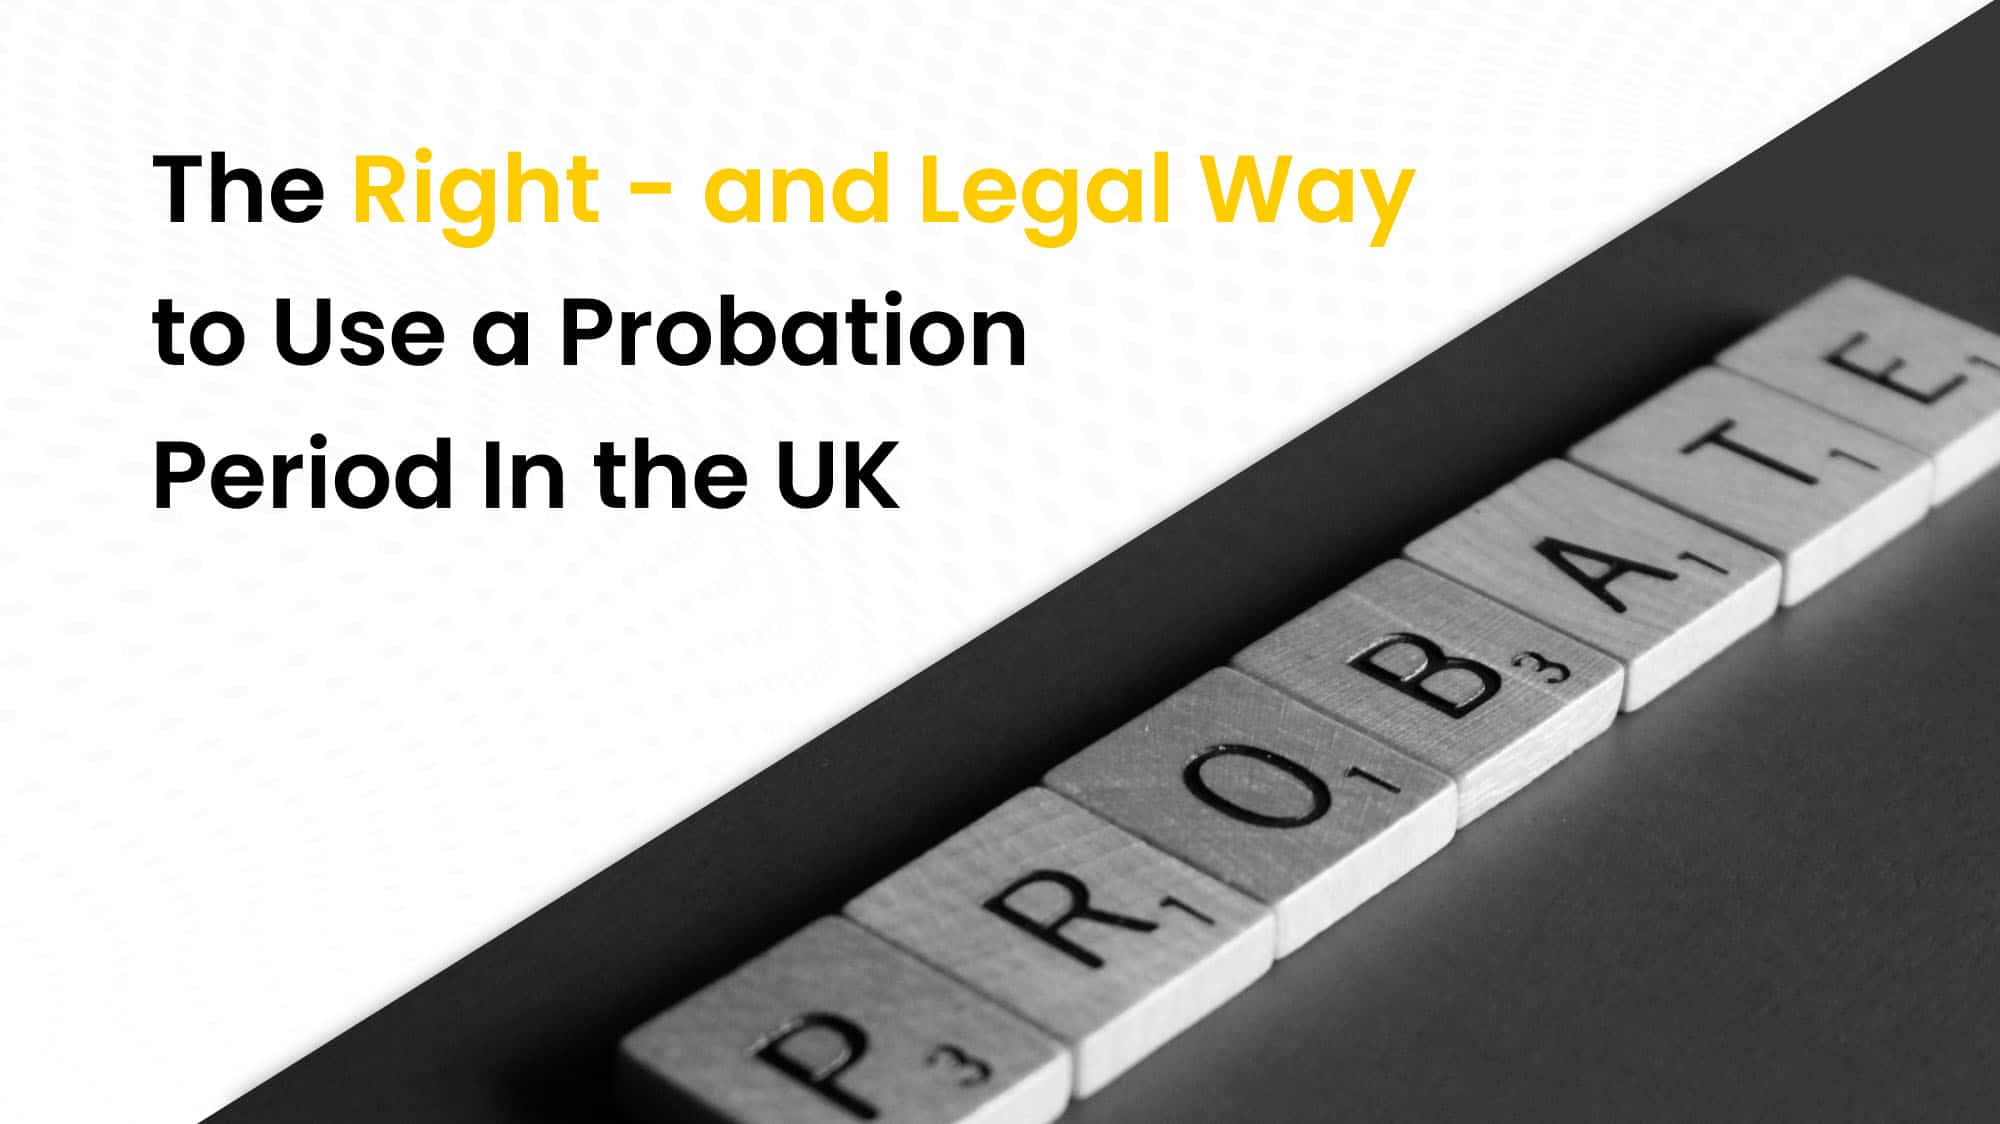 The right and legal way in UK